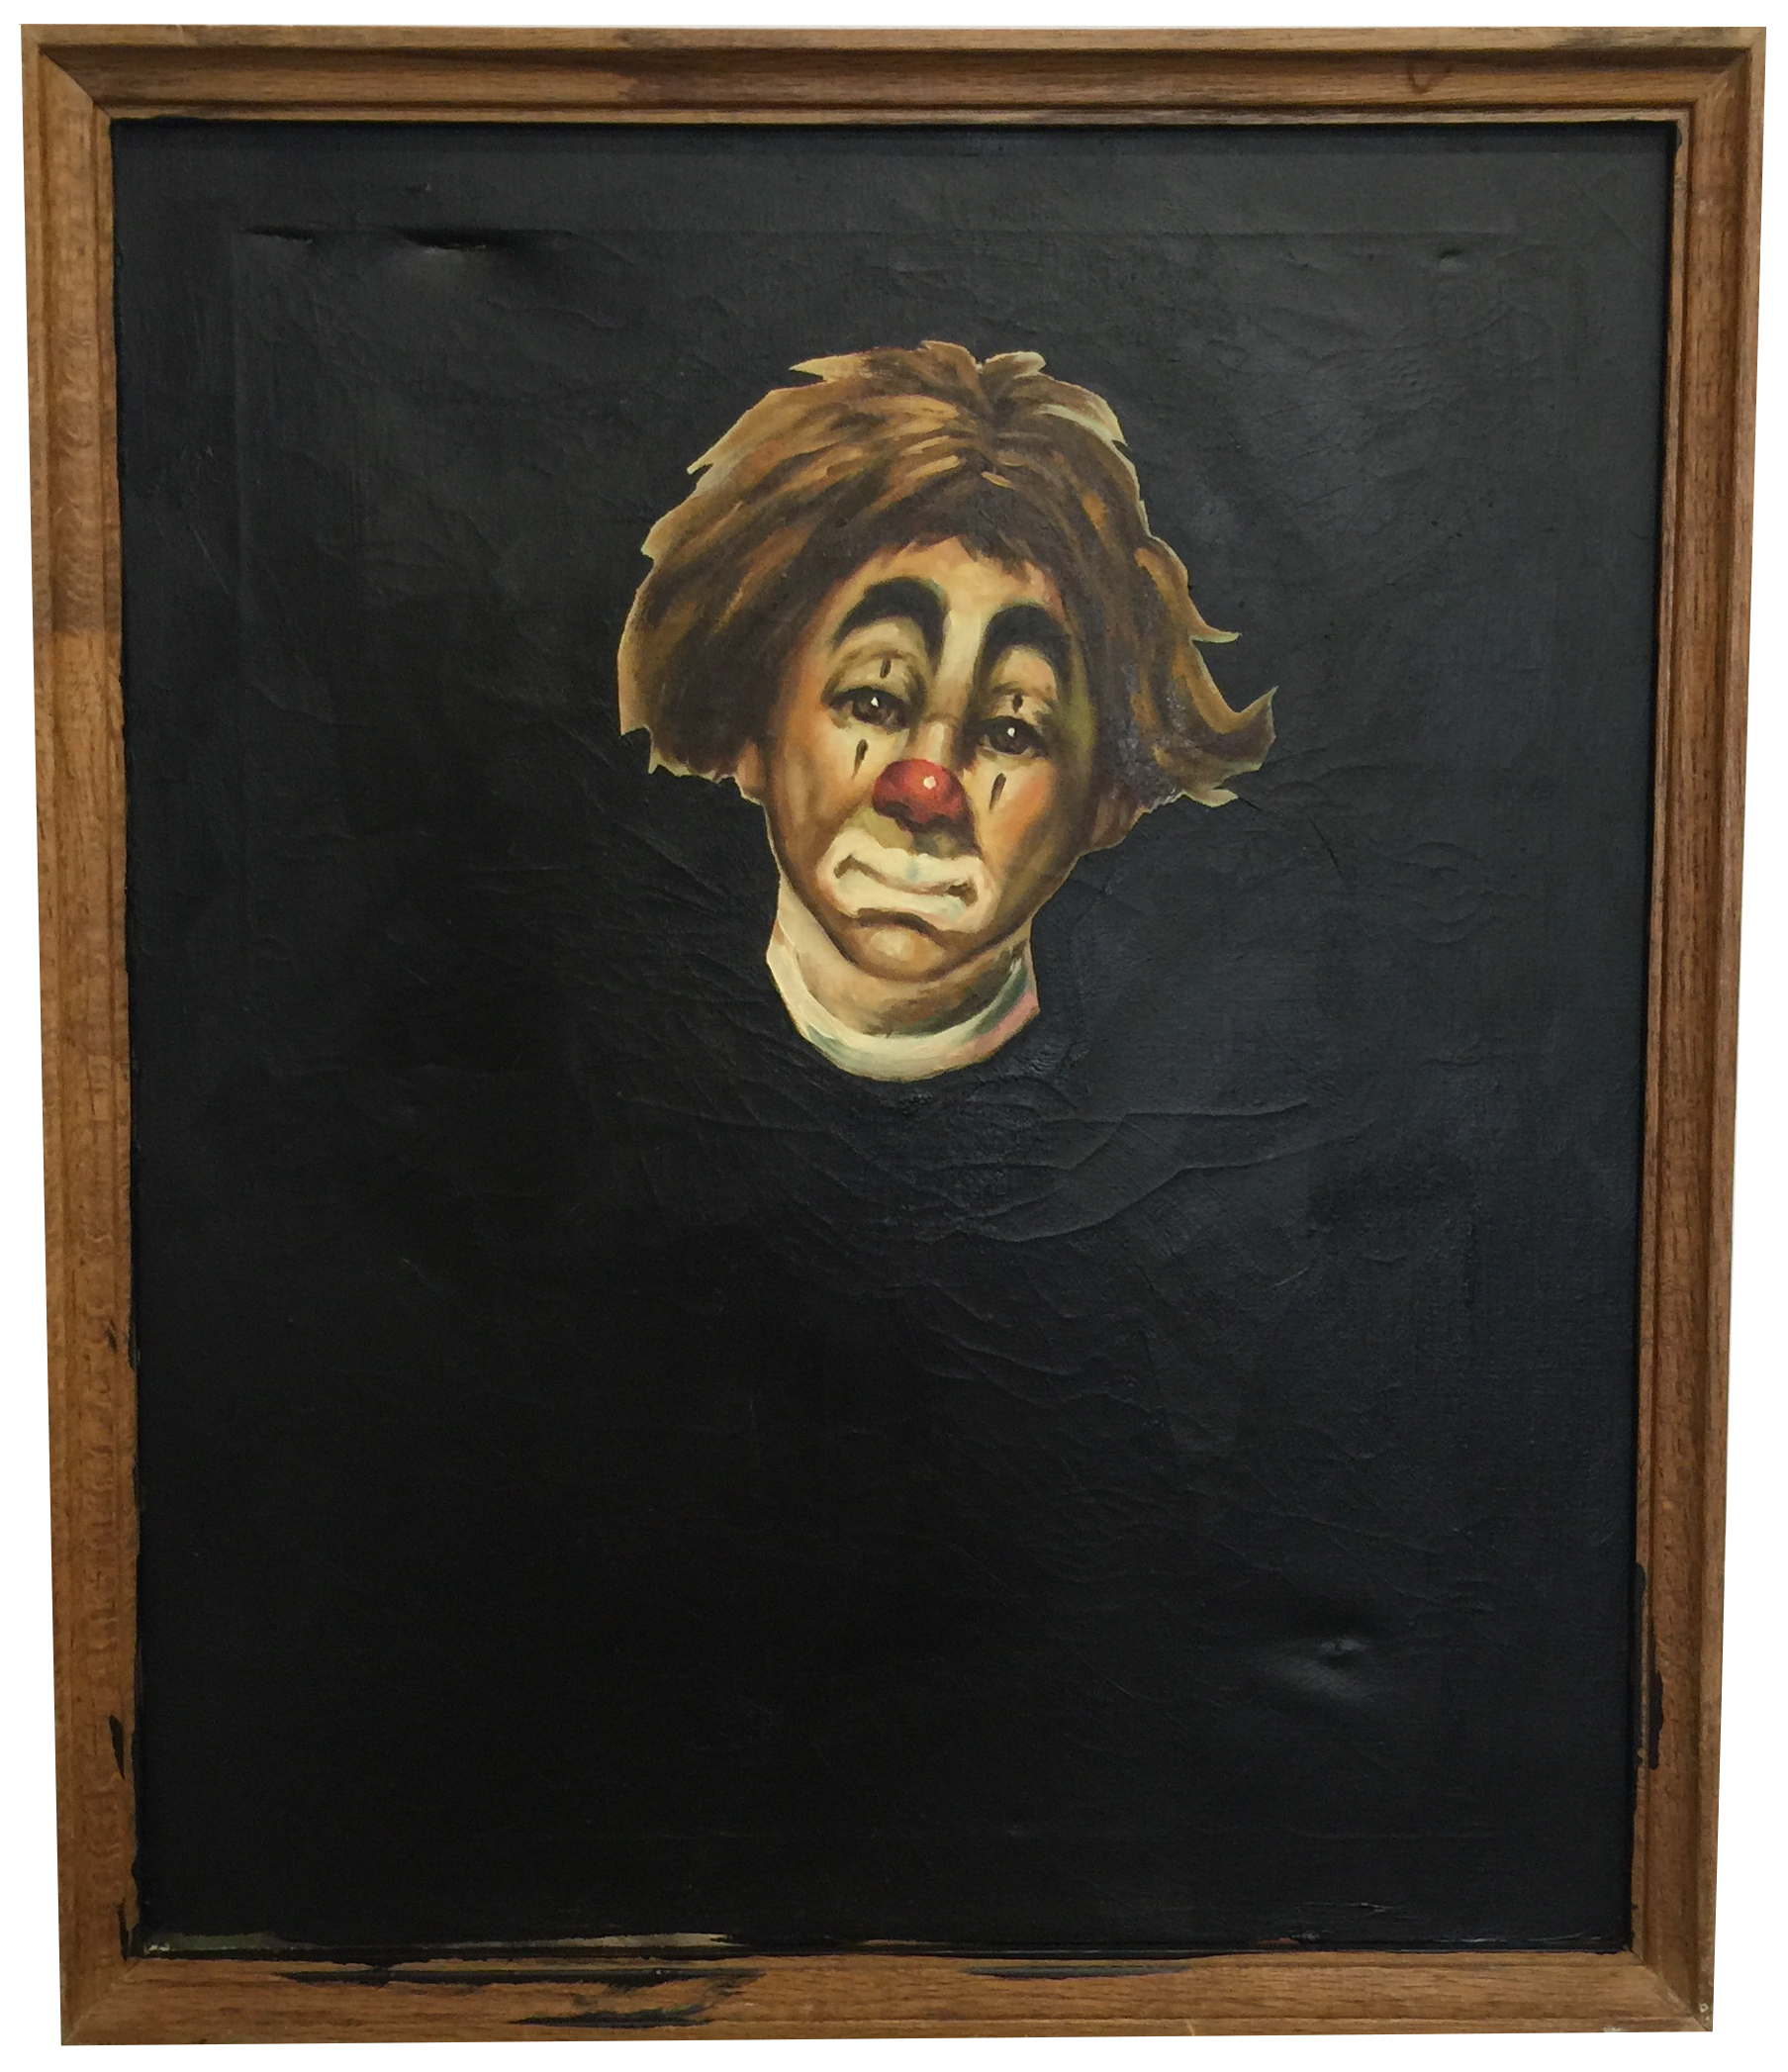 Blacked Out Clown by TMFA